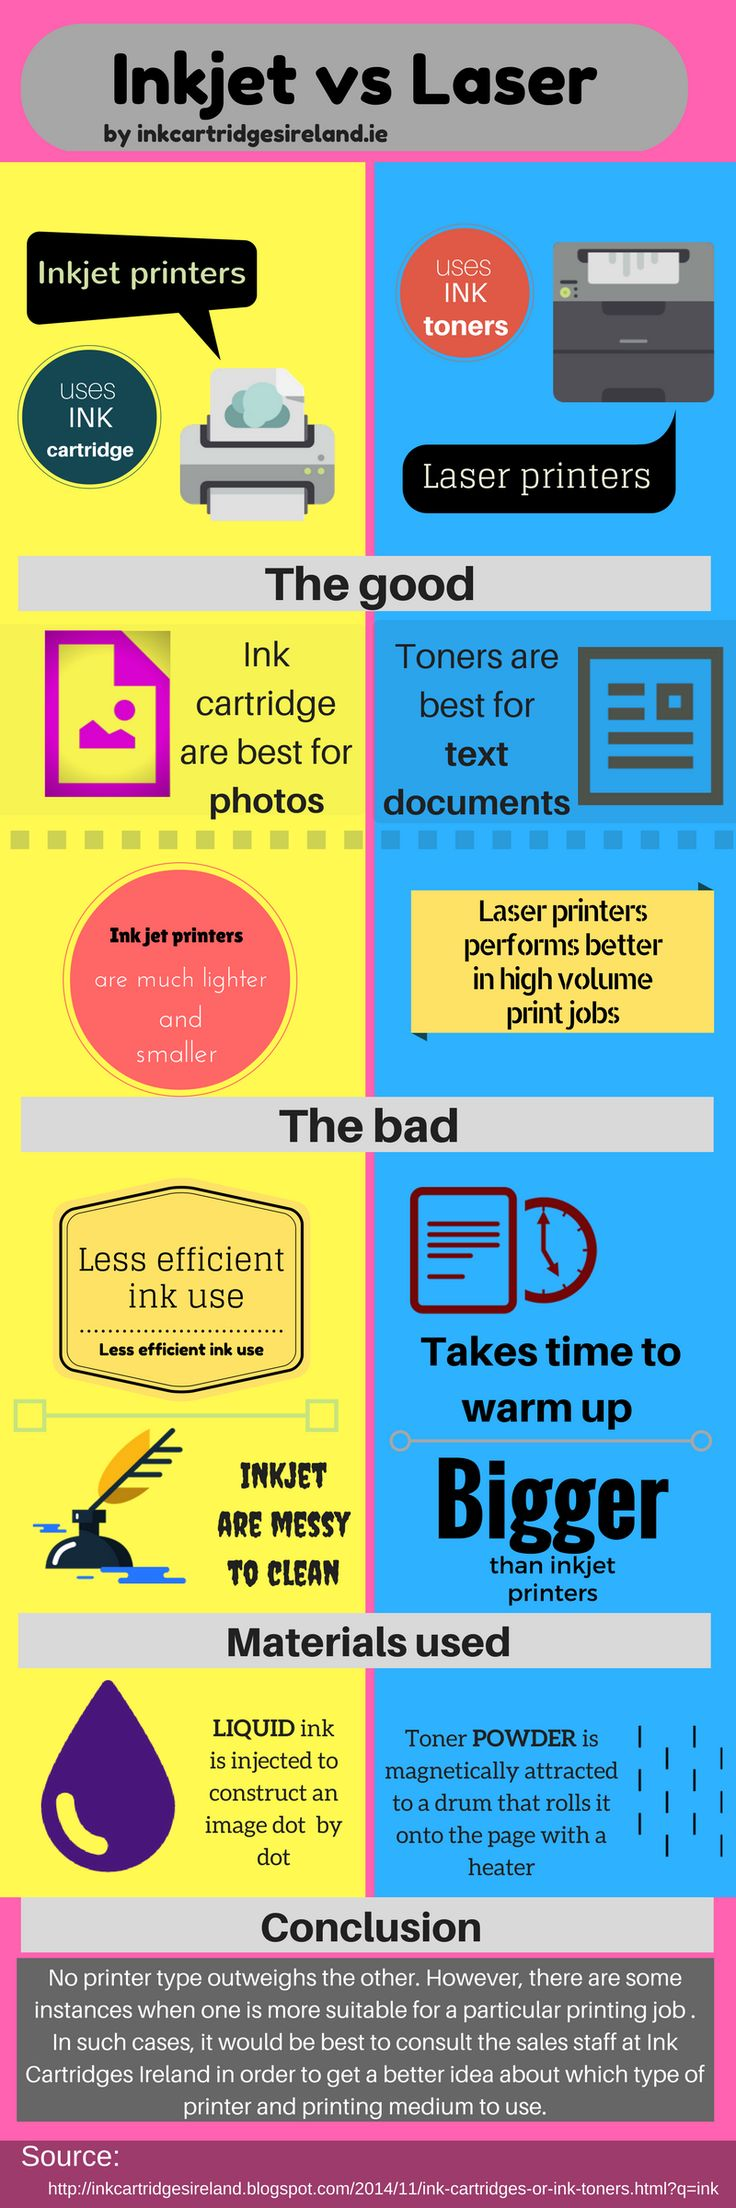 Color printing inkjet vs laser - Just Like Cars And Tv S Printers Have Grown Into A Large Population Of Printer Types